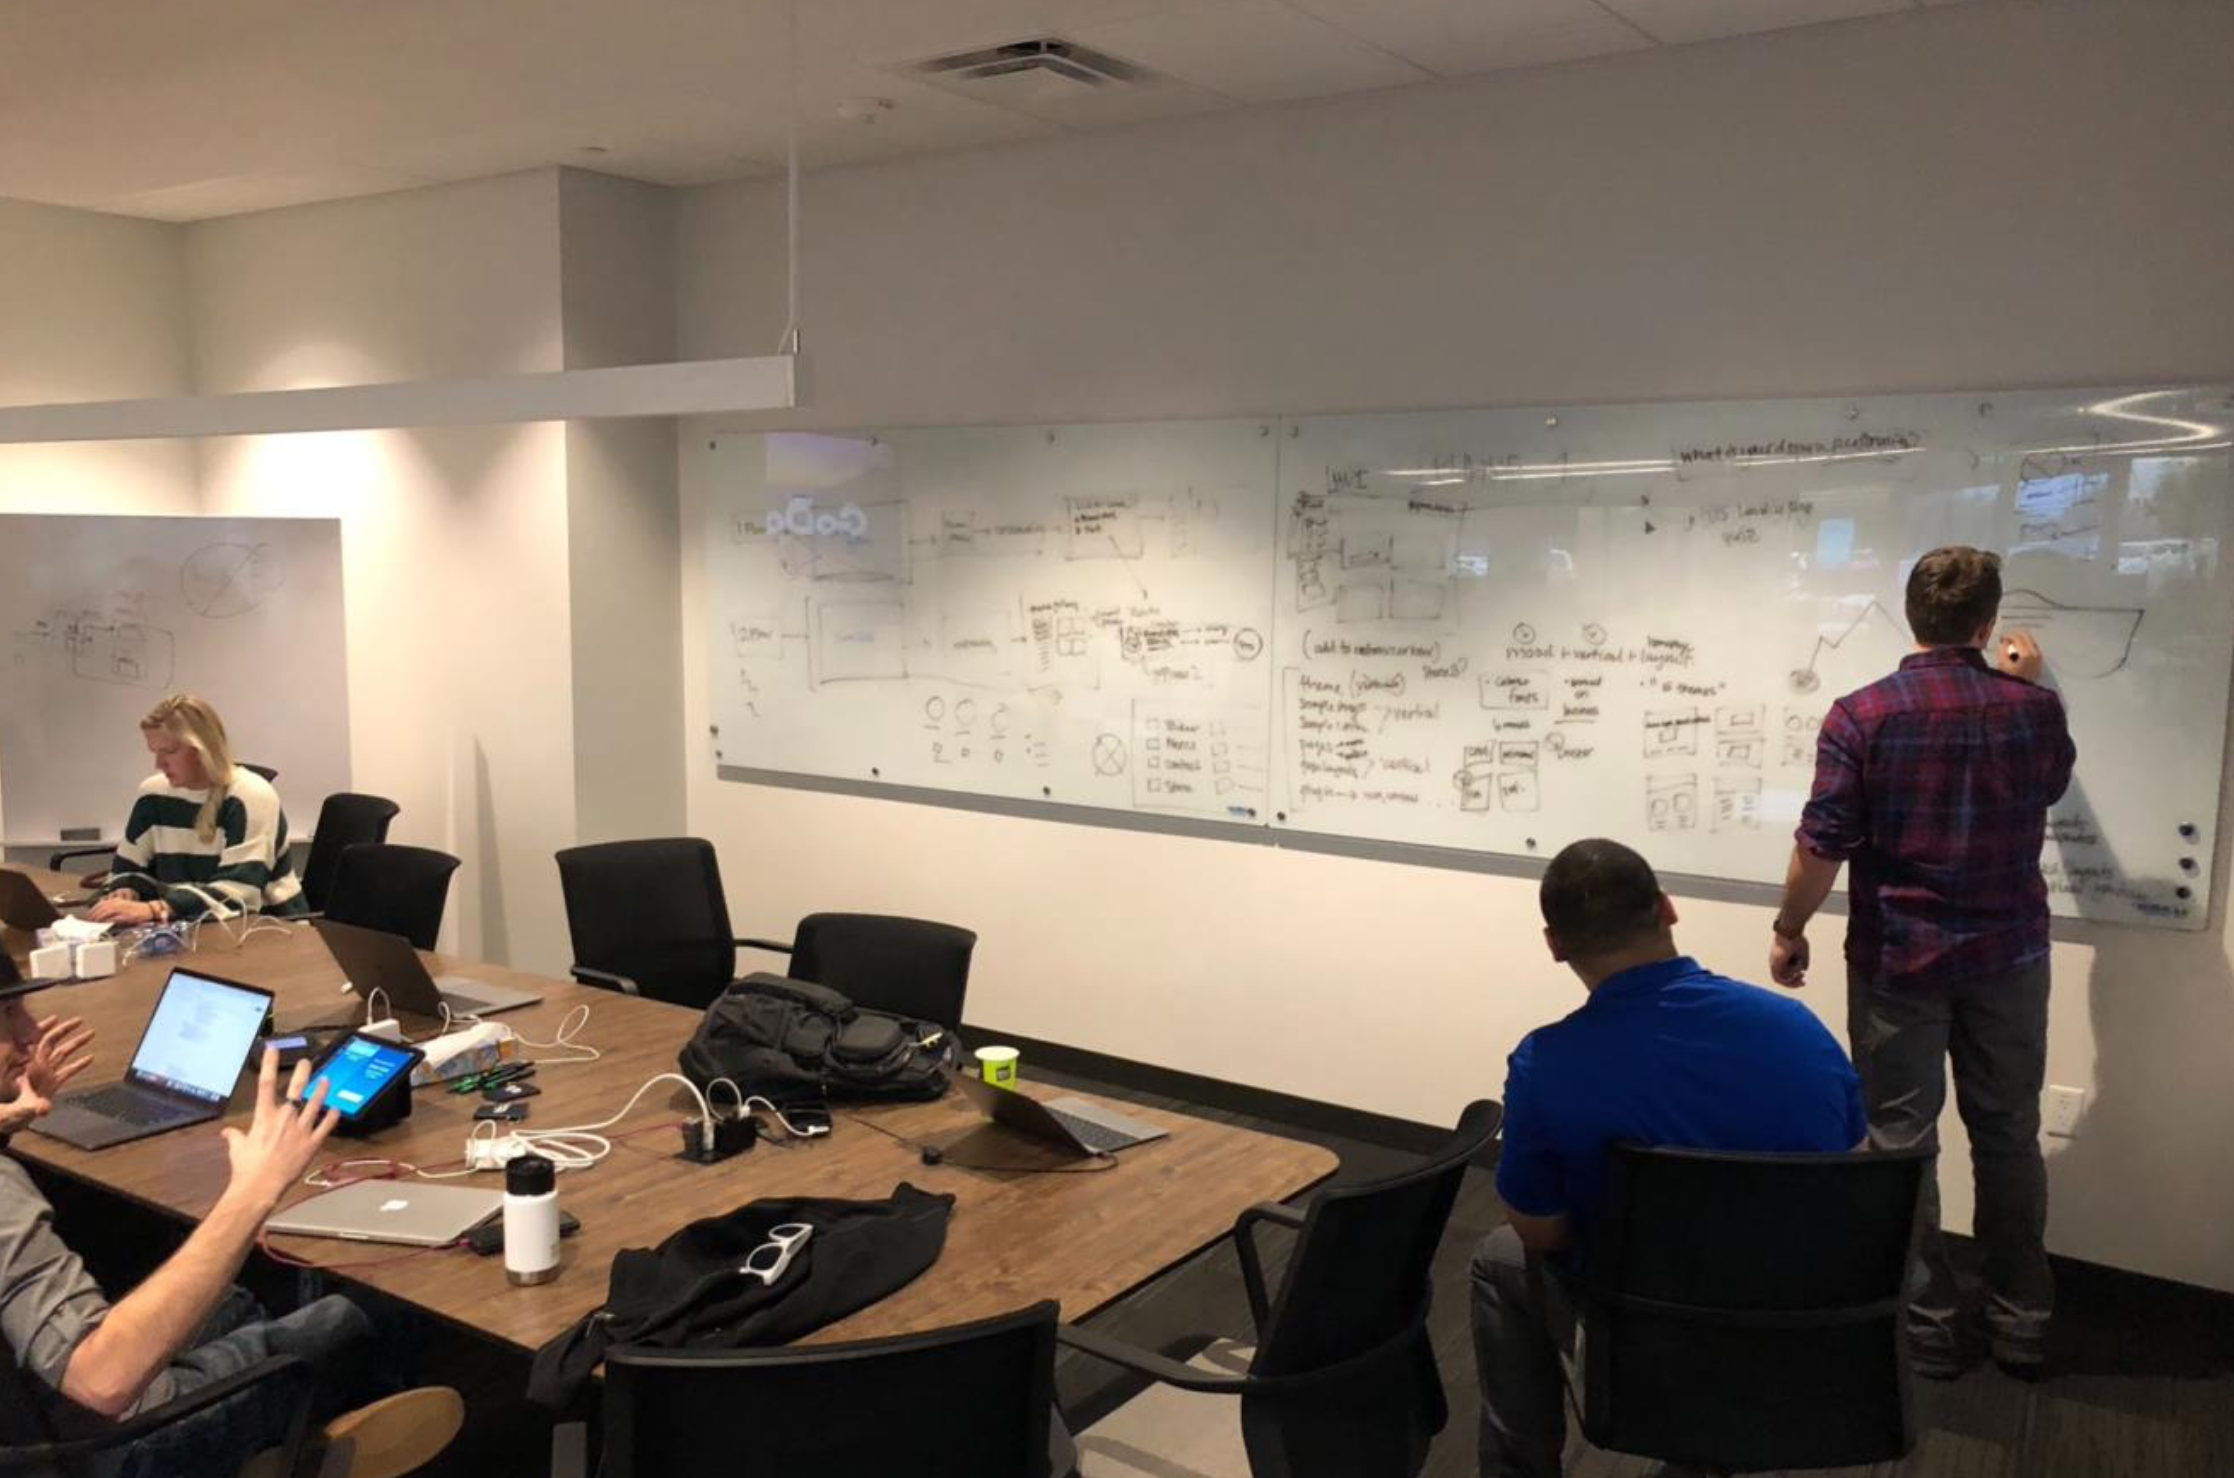 Brainstorming how to make GoDaddy's Managed WordPress Platform the best flavor of WordPress available